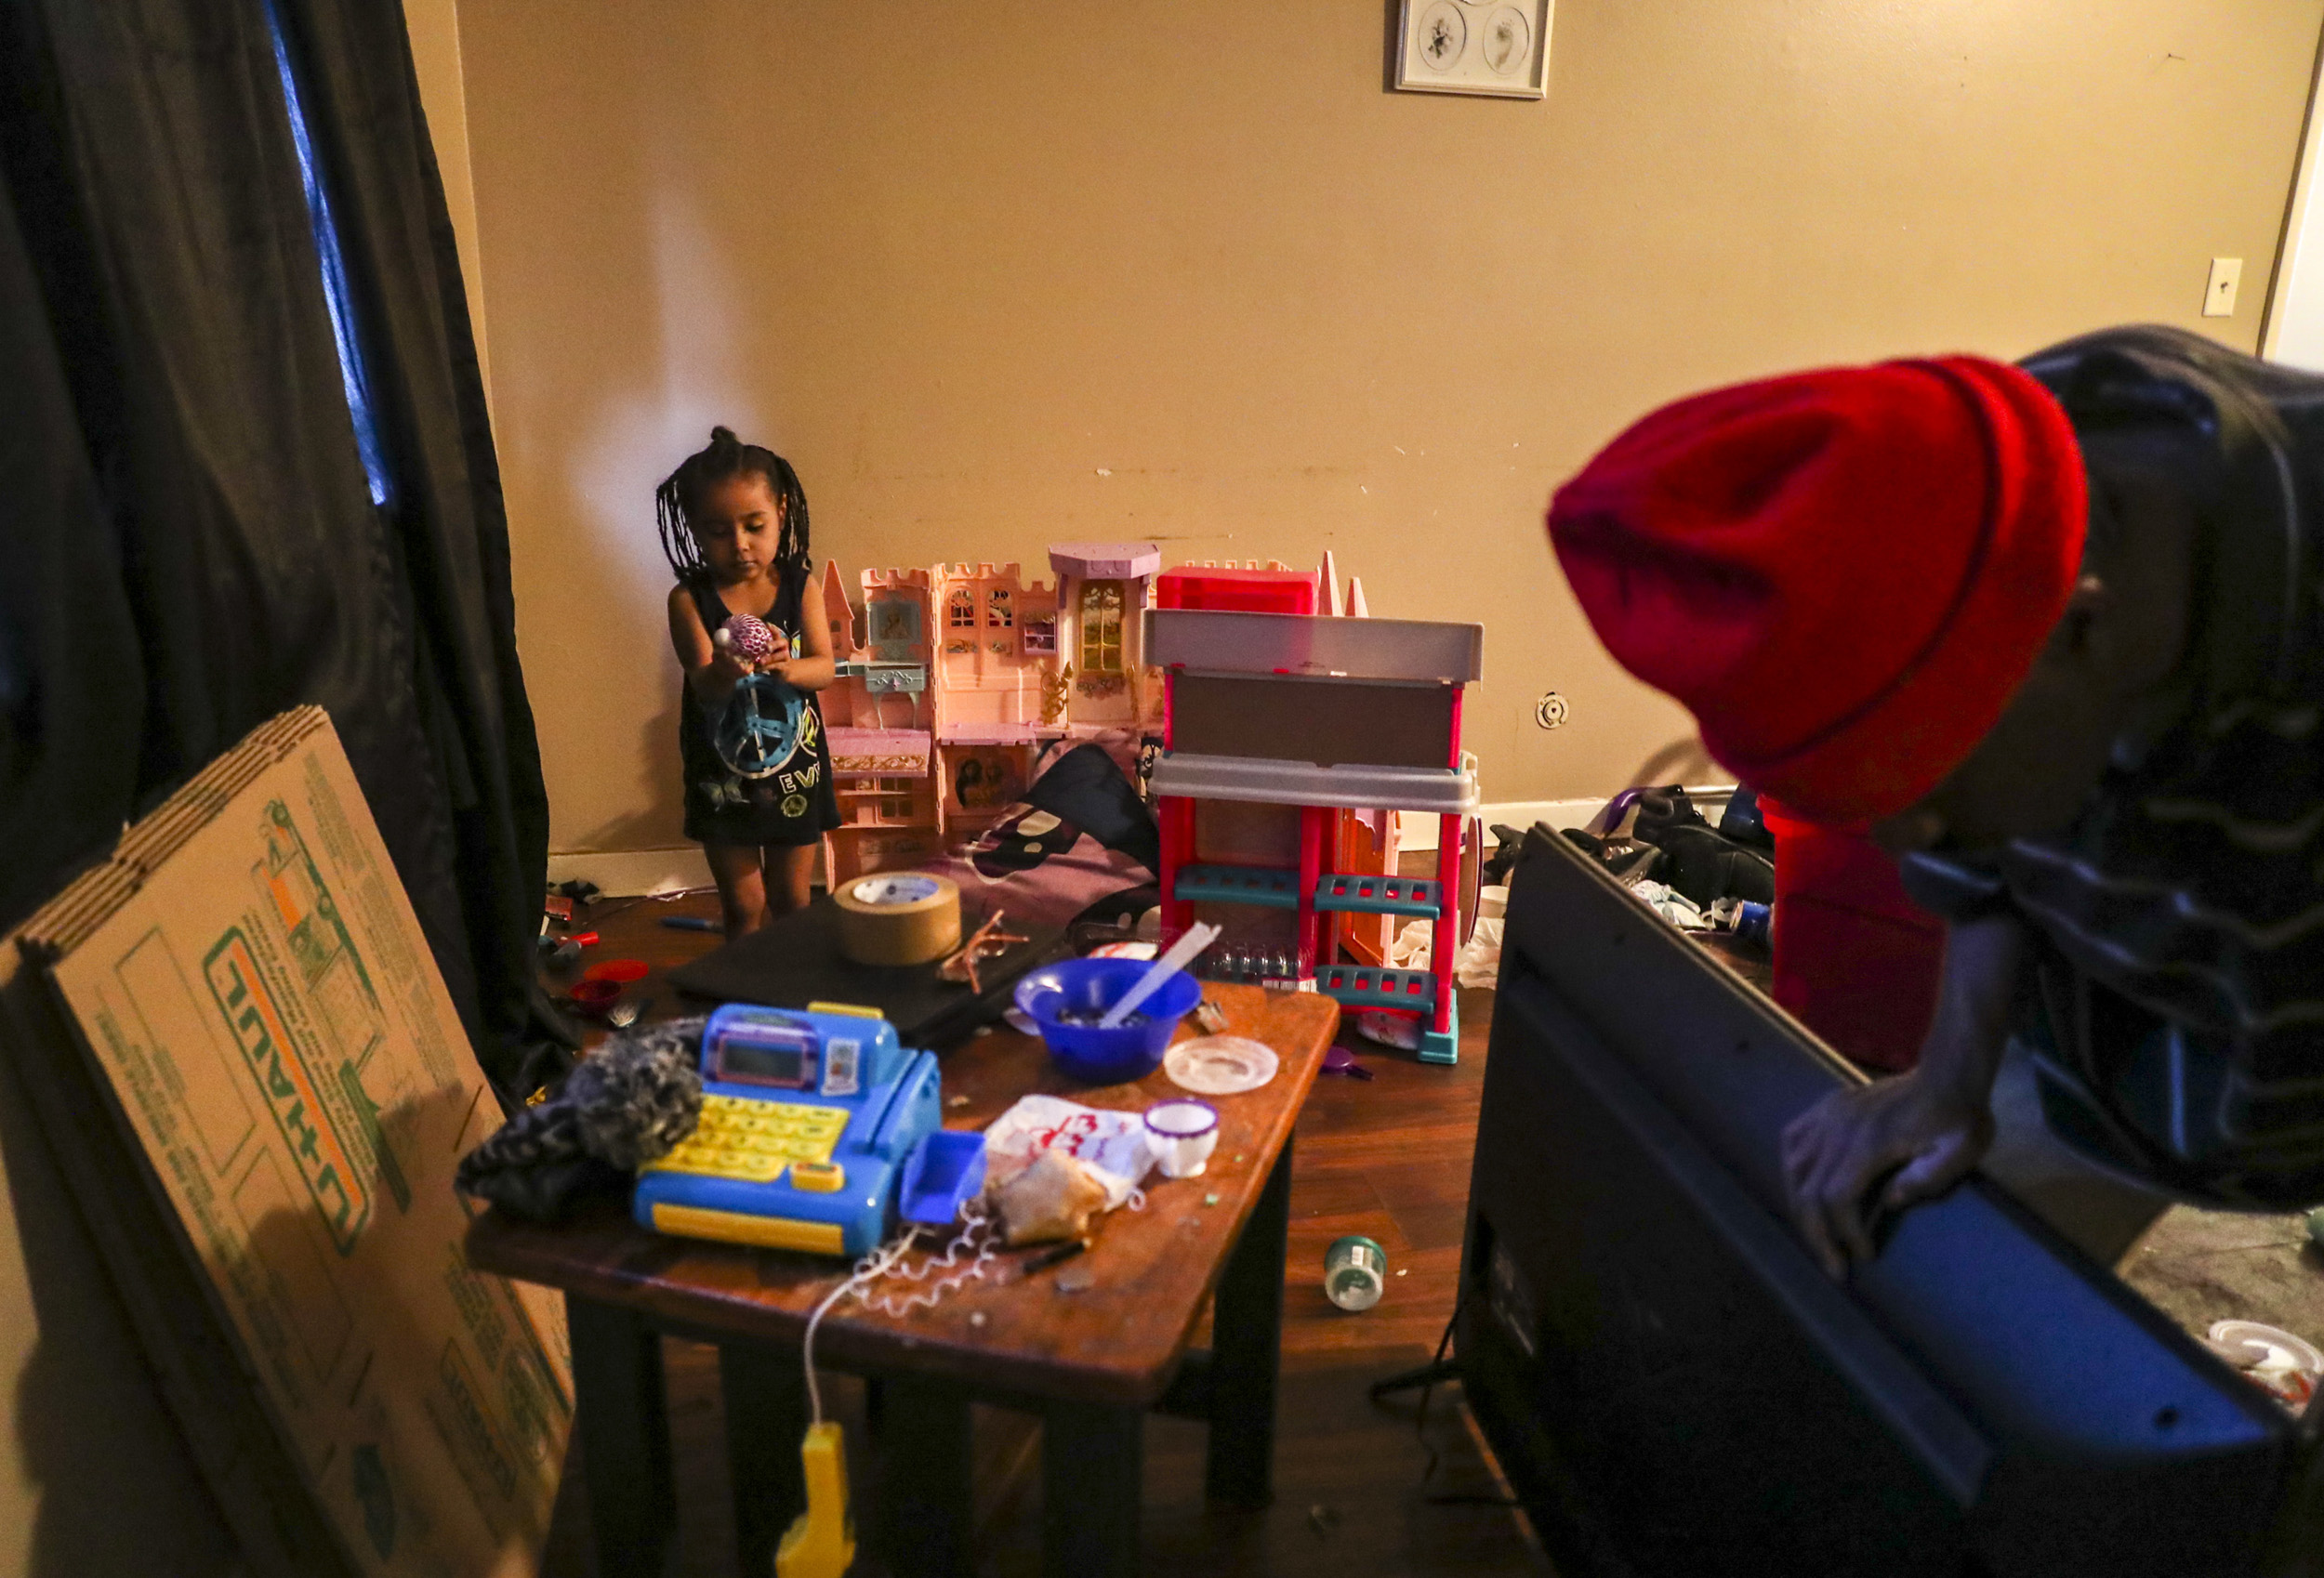 Serenity Thomas-Alonzo, 3, plays as her father, Terrill Thomas, packs up a flatscreen TV to move out to a rental truck in Davenport, Thursday, March 7, 2019. The building they lived in was shuttered by the city of Davenport on Friday, March 8 as a part of an ongoing bankruptcy case that concerns scores of rental properties across the Quad-Cities.